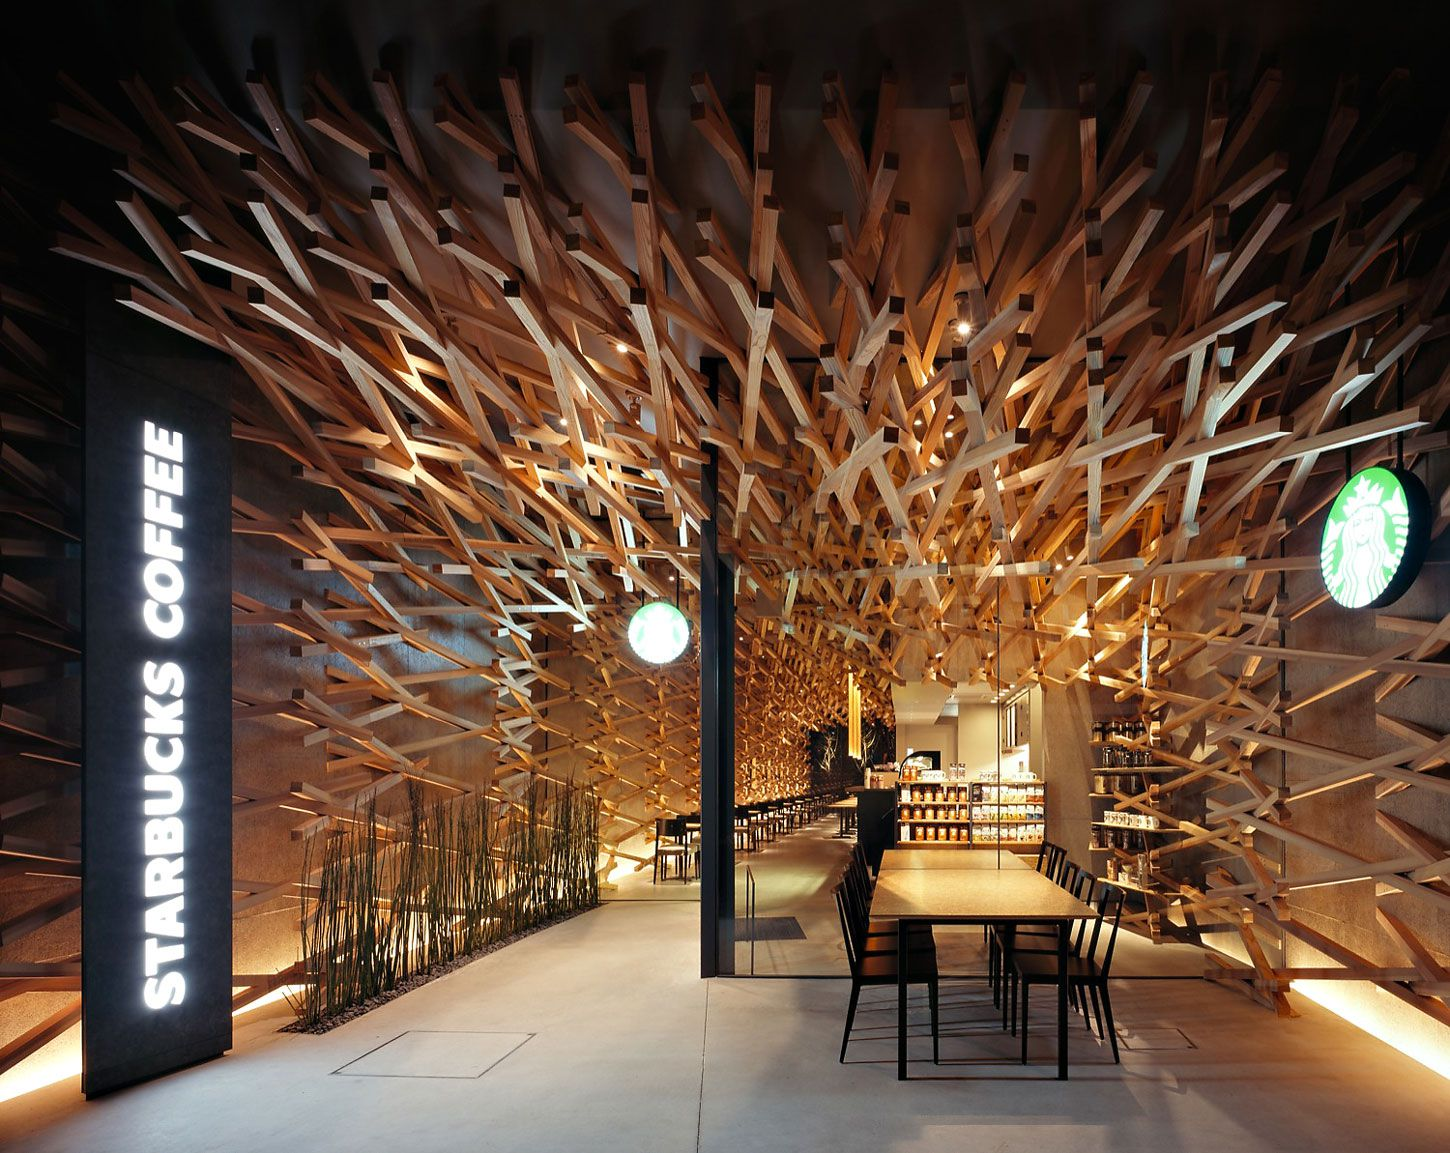 Wooden Starbucks Interior Design in Fukuoka by Kengo Kuma and Associates